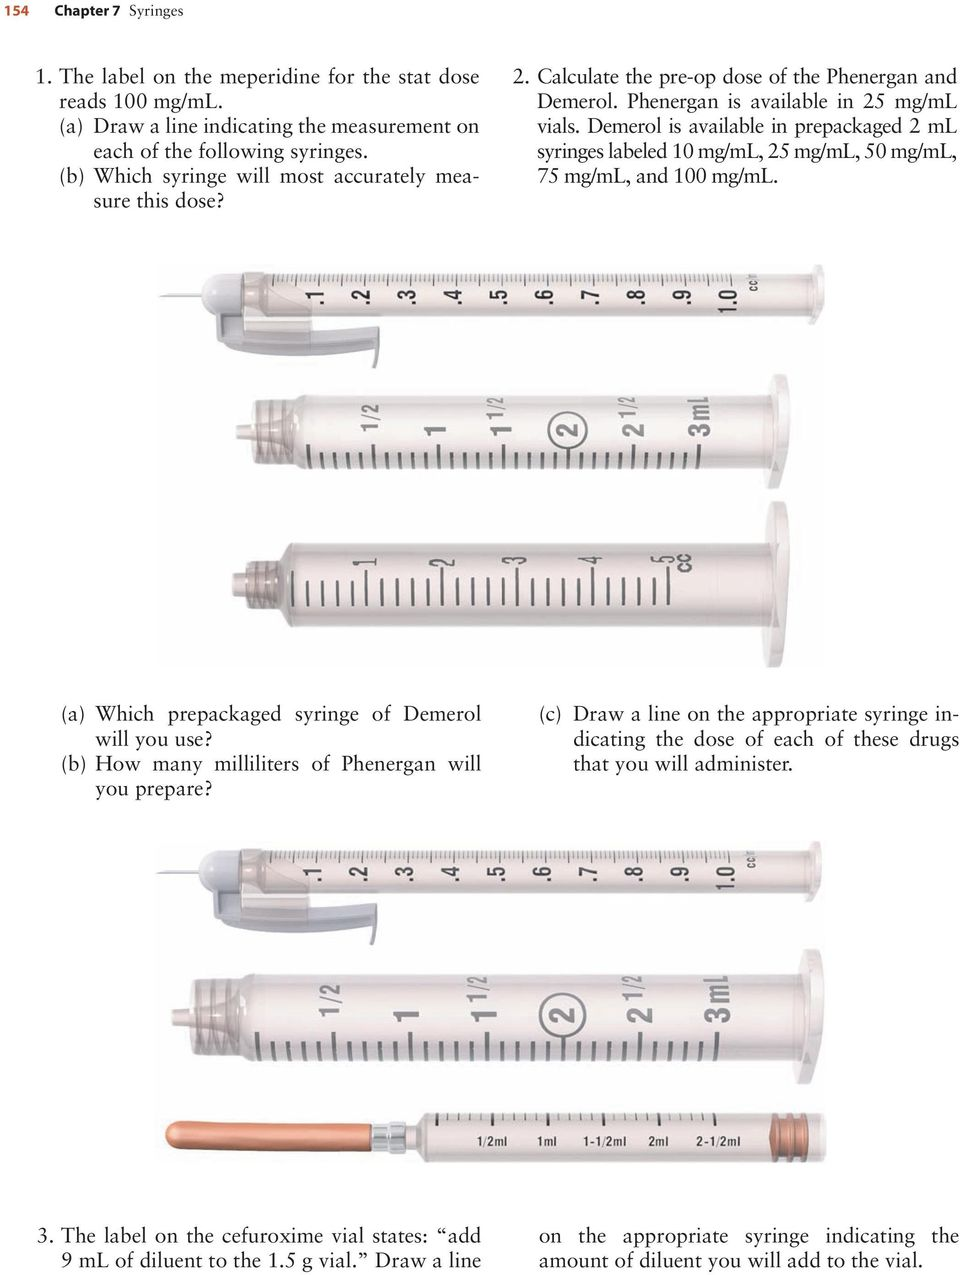 Demerol is available in prepackaged 2 ml syringes labeled 10 mg/ml, 25 mg/ml, 50 mg/ml, 75 mg/ml, and 100 mg/ml. (a) Which prepackaged syringe of Demerol will you use?